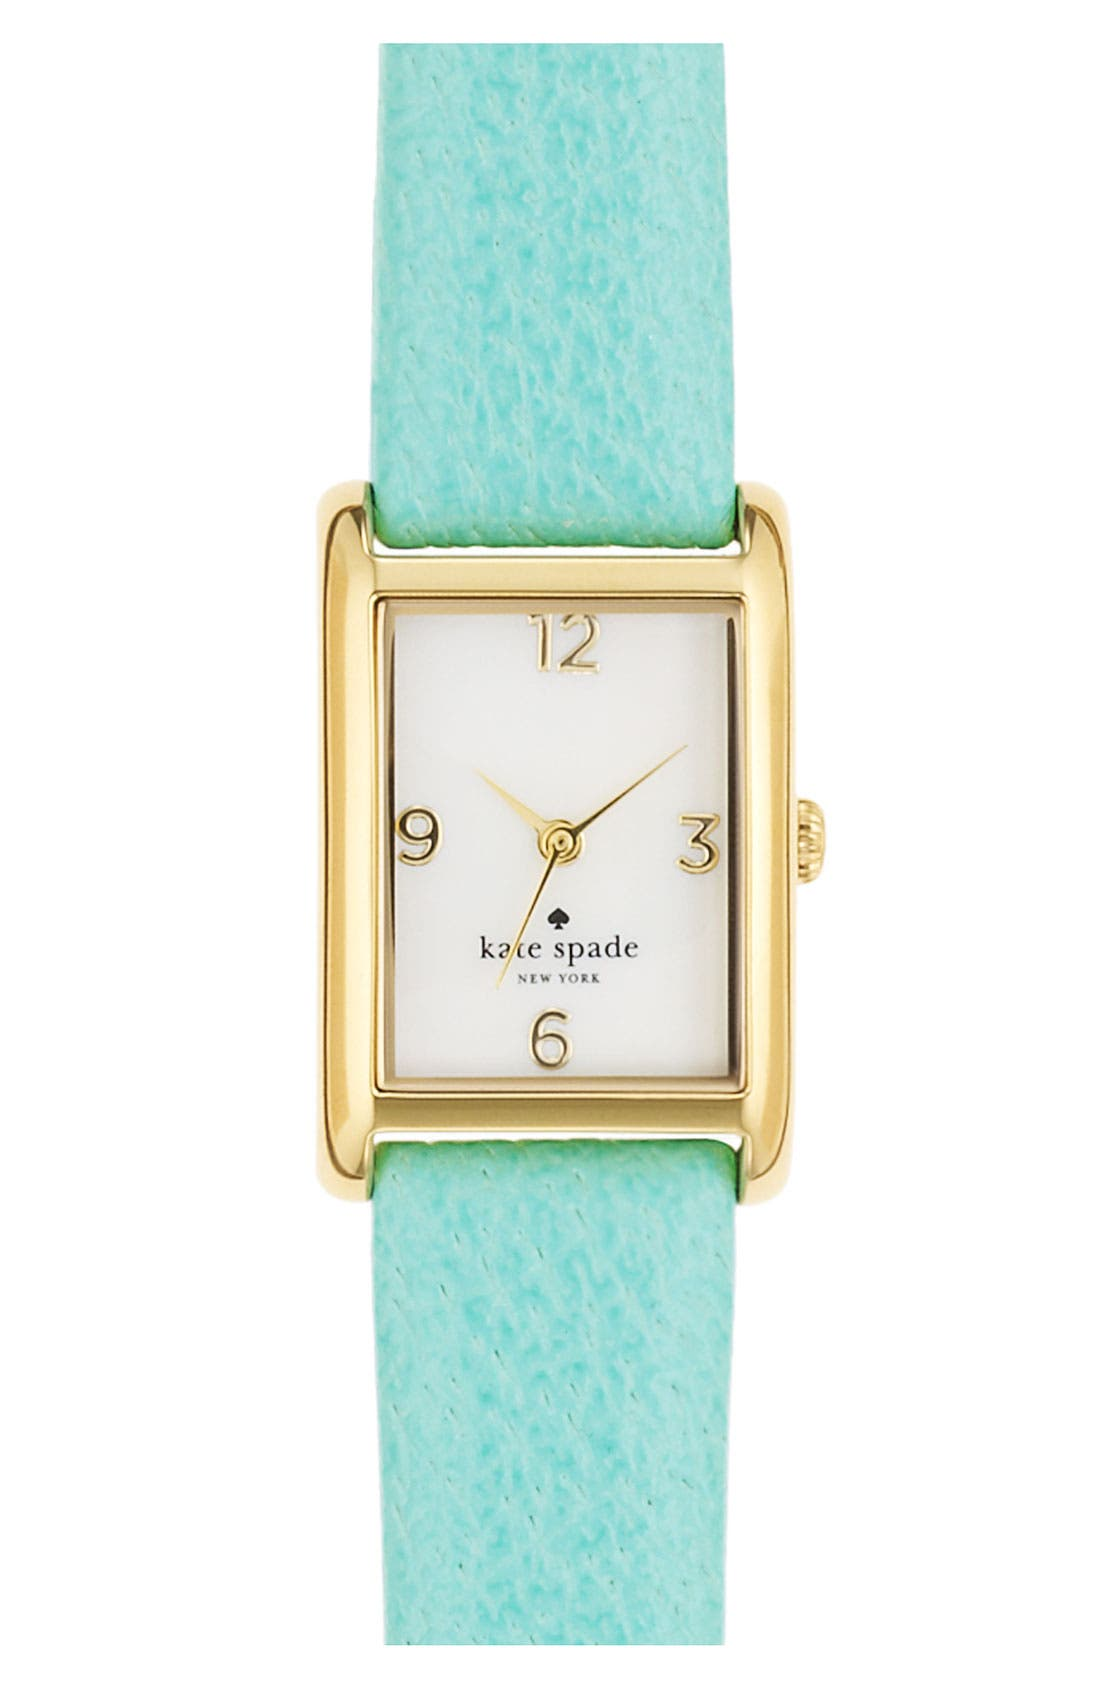 Main Image - kate spade new york 'cooper' leather strap watch, 21mm x 32mm